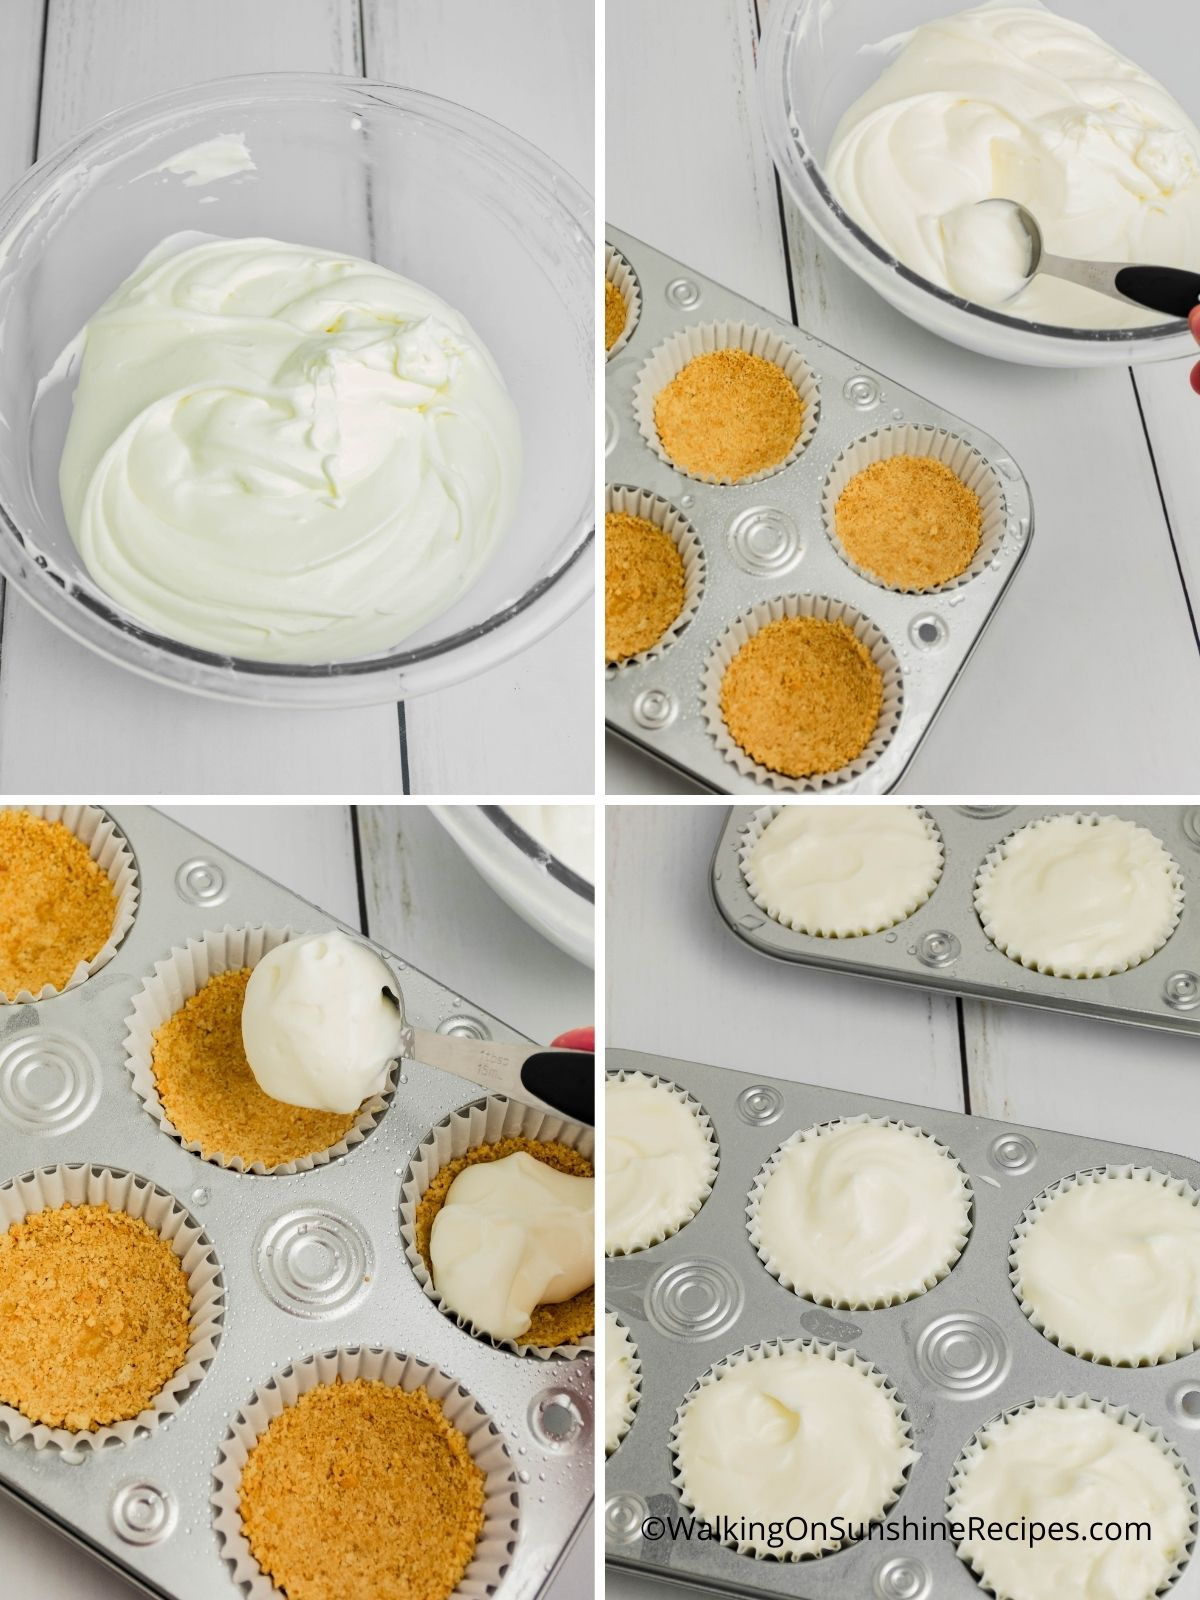 Fill muffin pans with cream cheese vanilla pudding mixture.